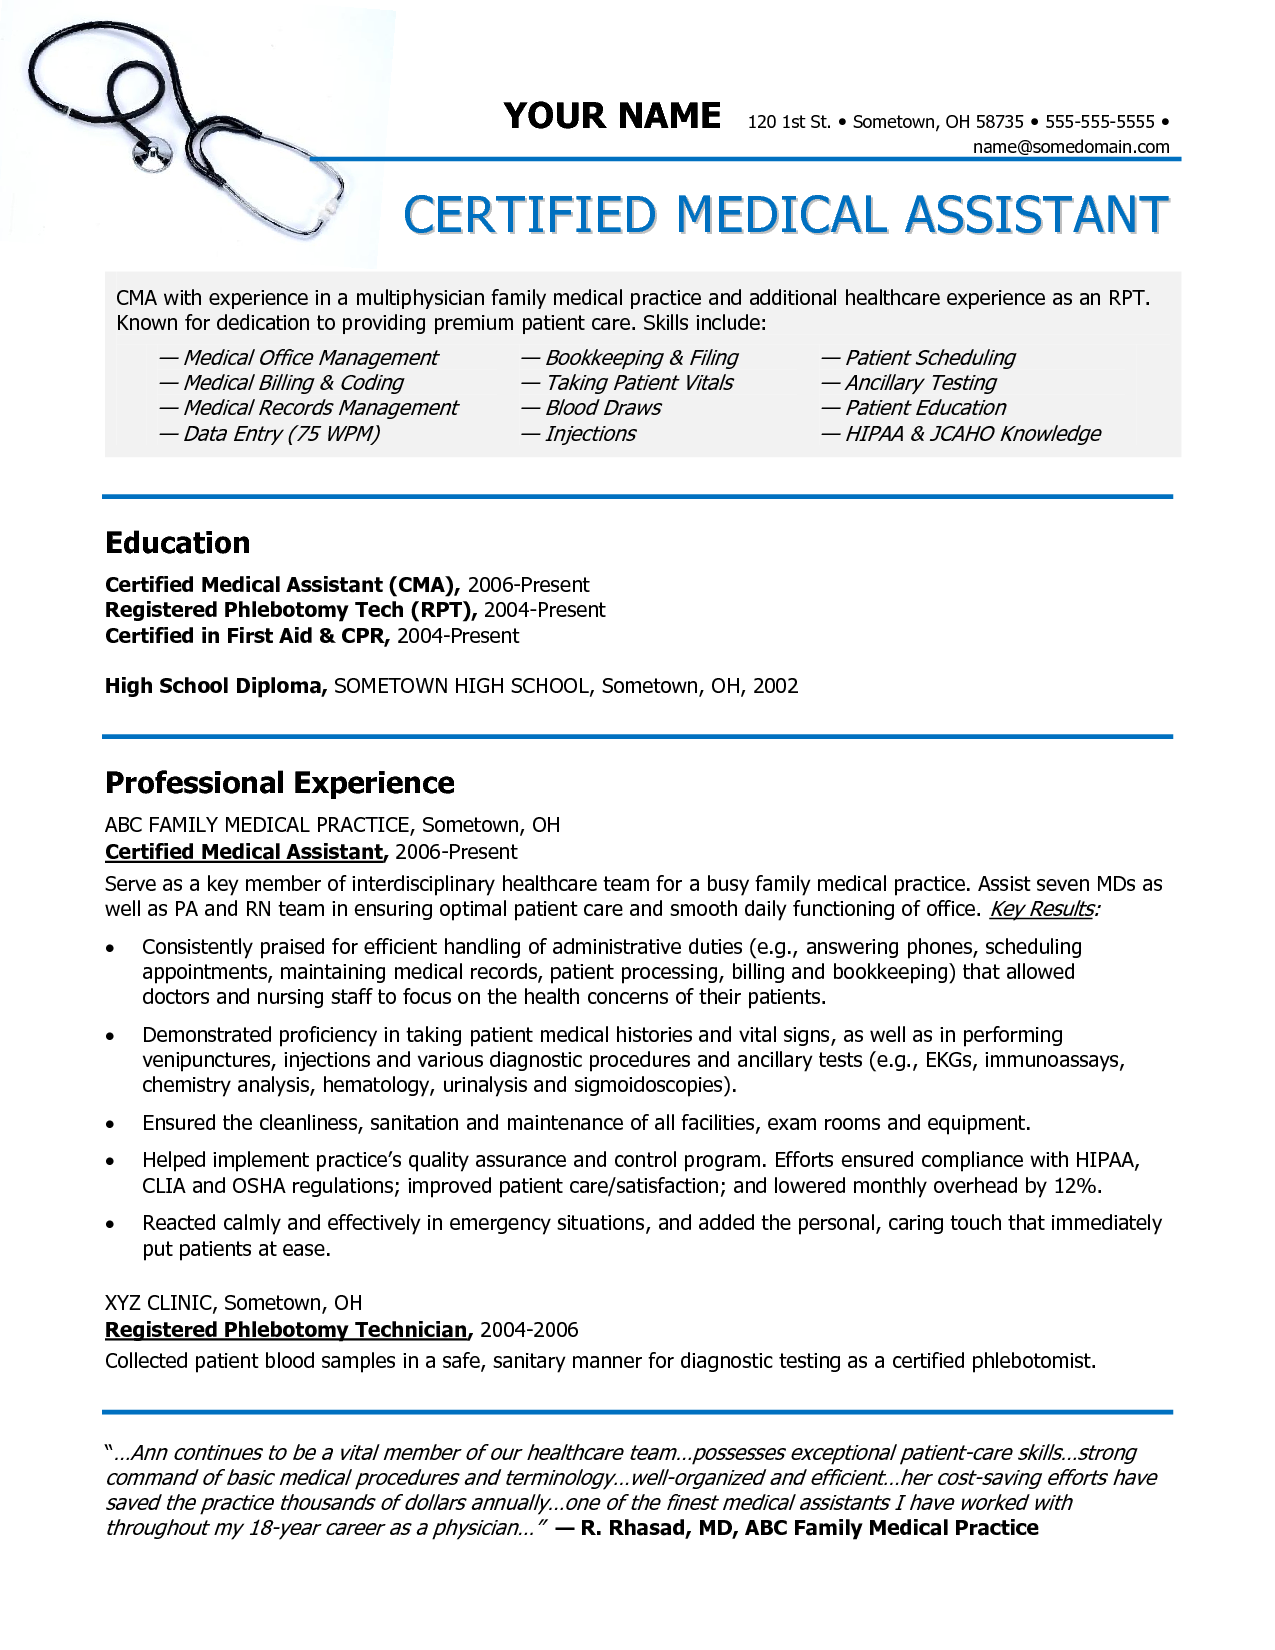 Nice Objective For Resume Medical Assistant Medical Assistant Resume Sample, Medical  Resume Templates 14 Medical Assistant Resume Uxhandycom, Medical Assistant  ... Idea Objective For Medical Assistant Resume